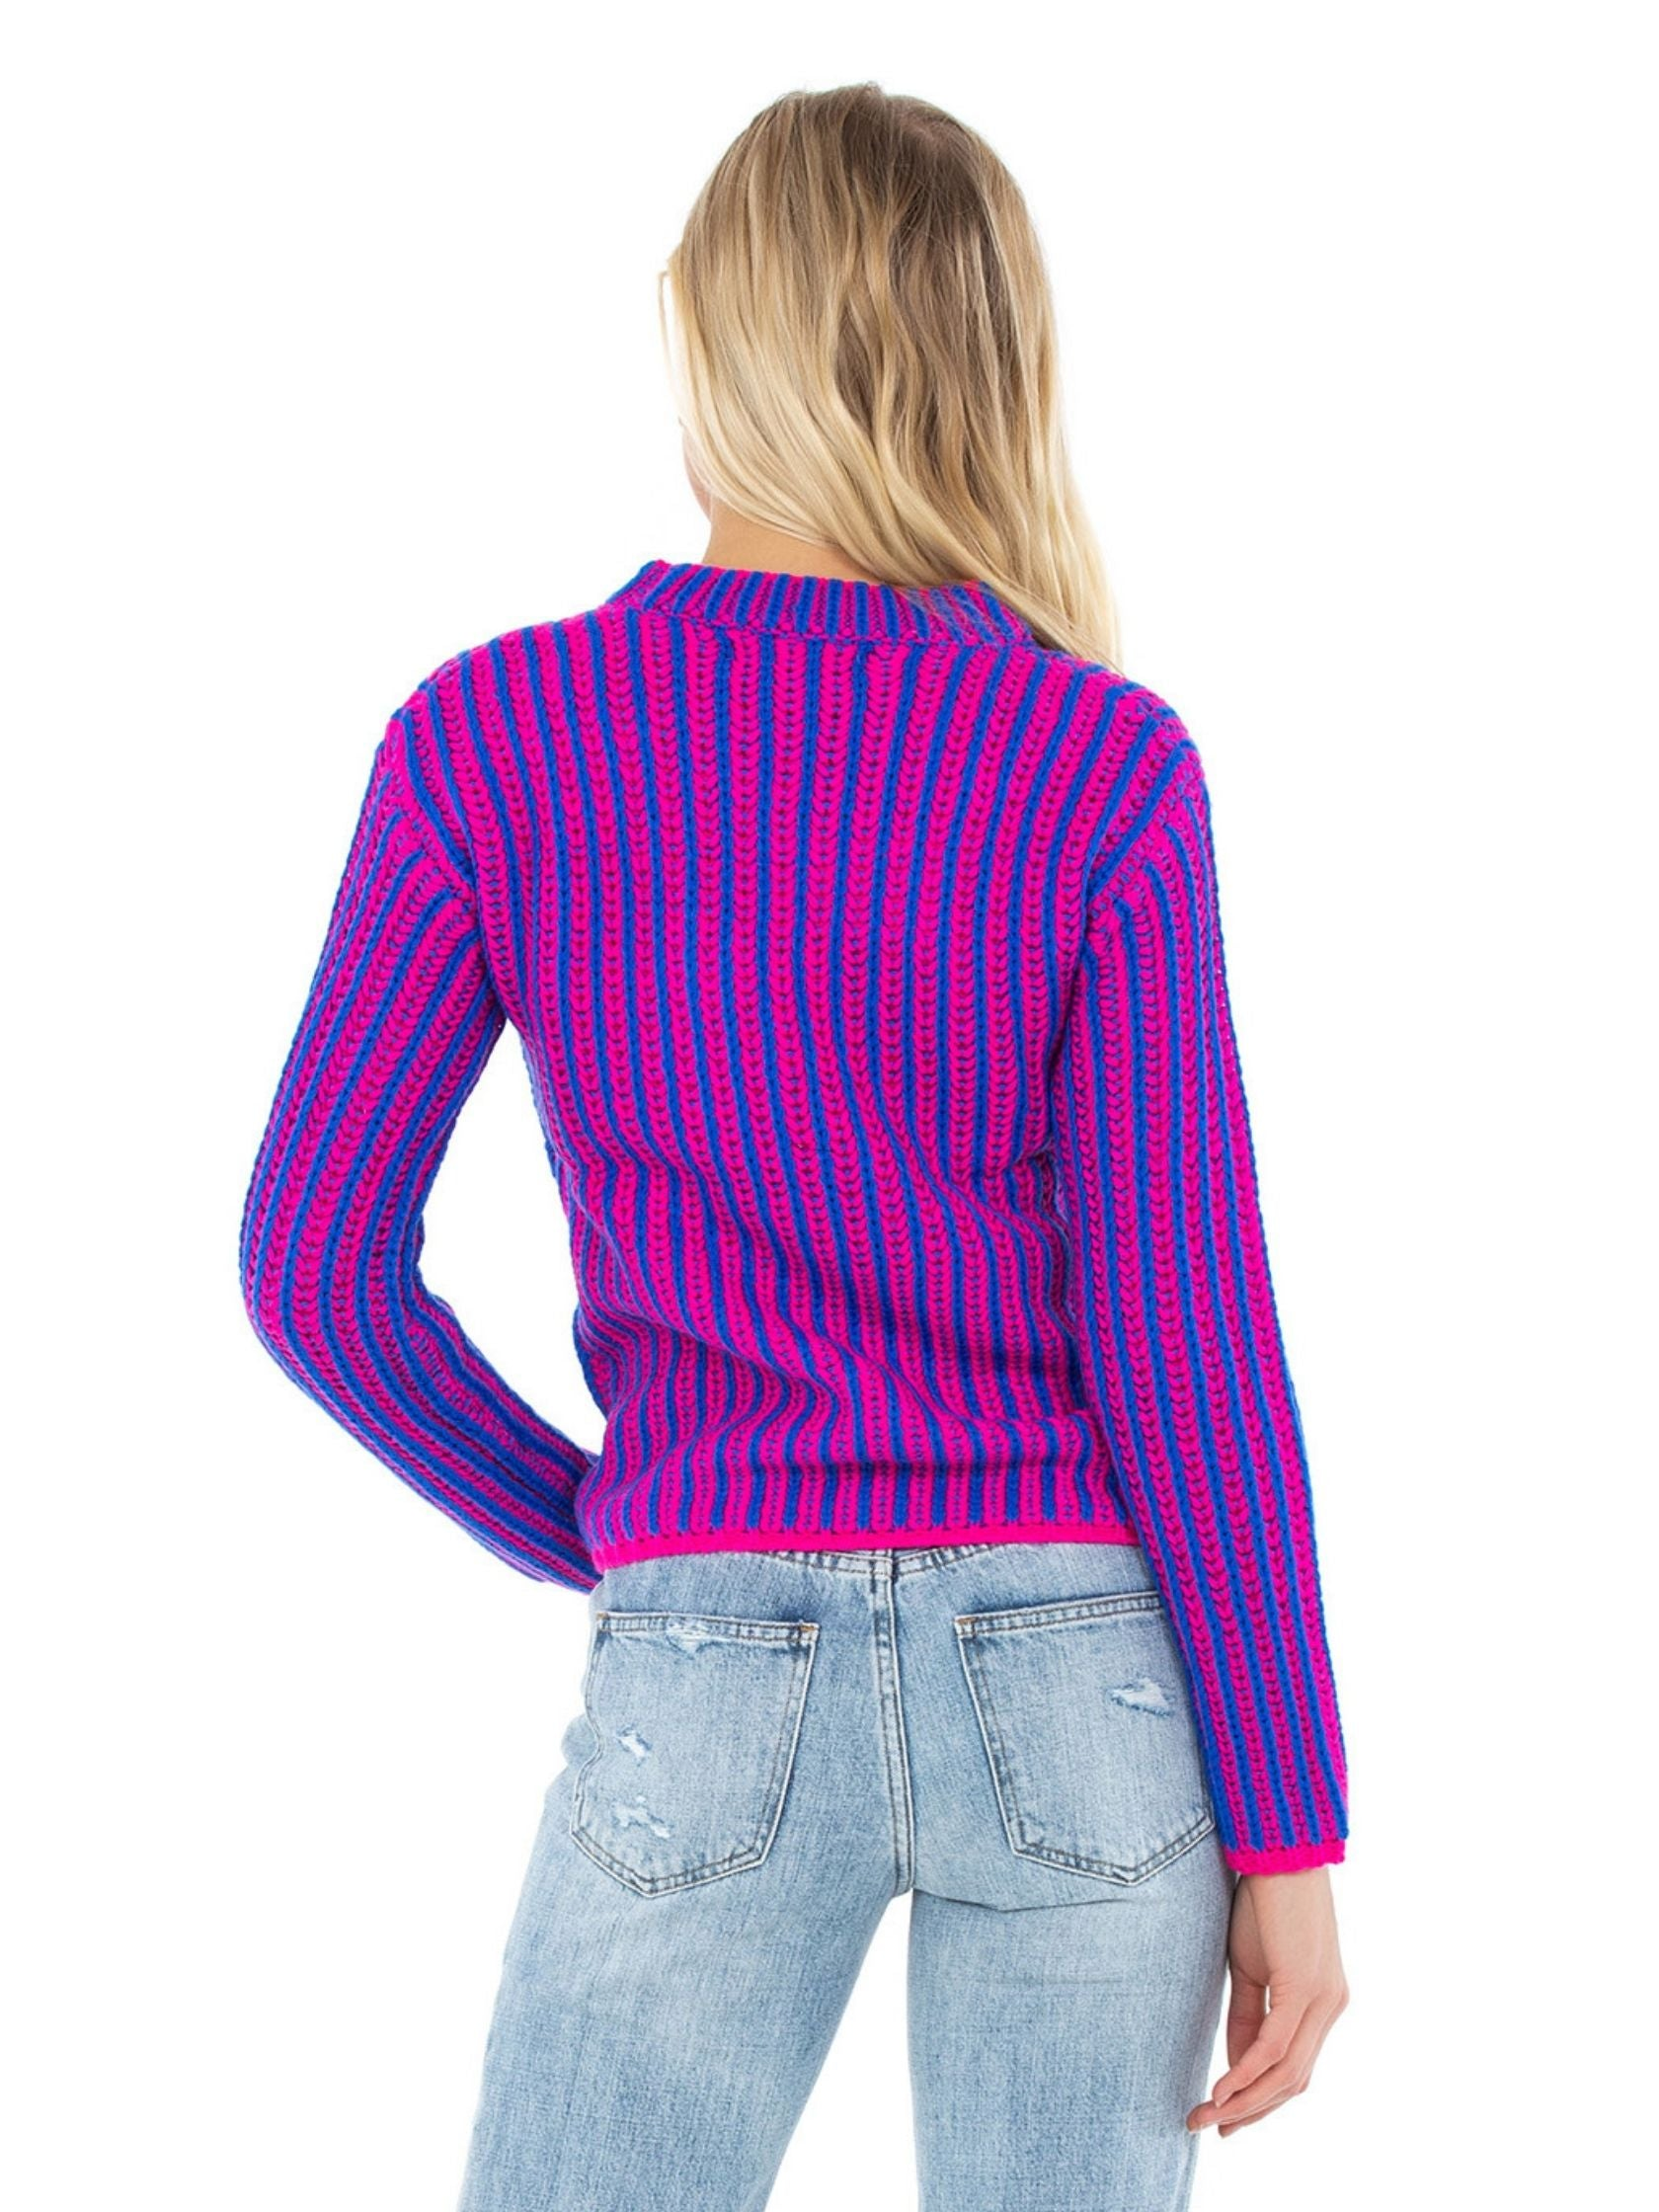 Women outfit in a sweater rental from Endless Rose called Stripe Mix Color Sweater